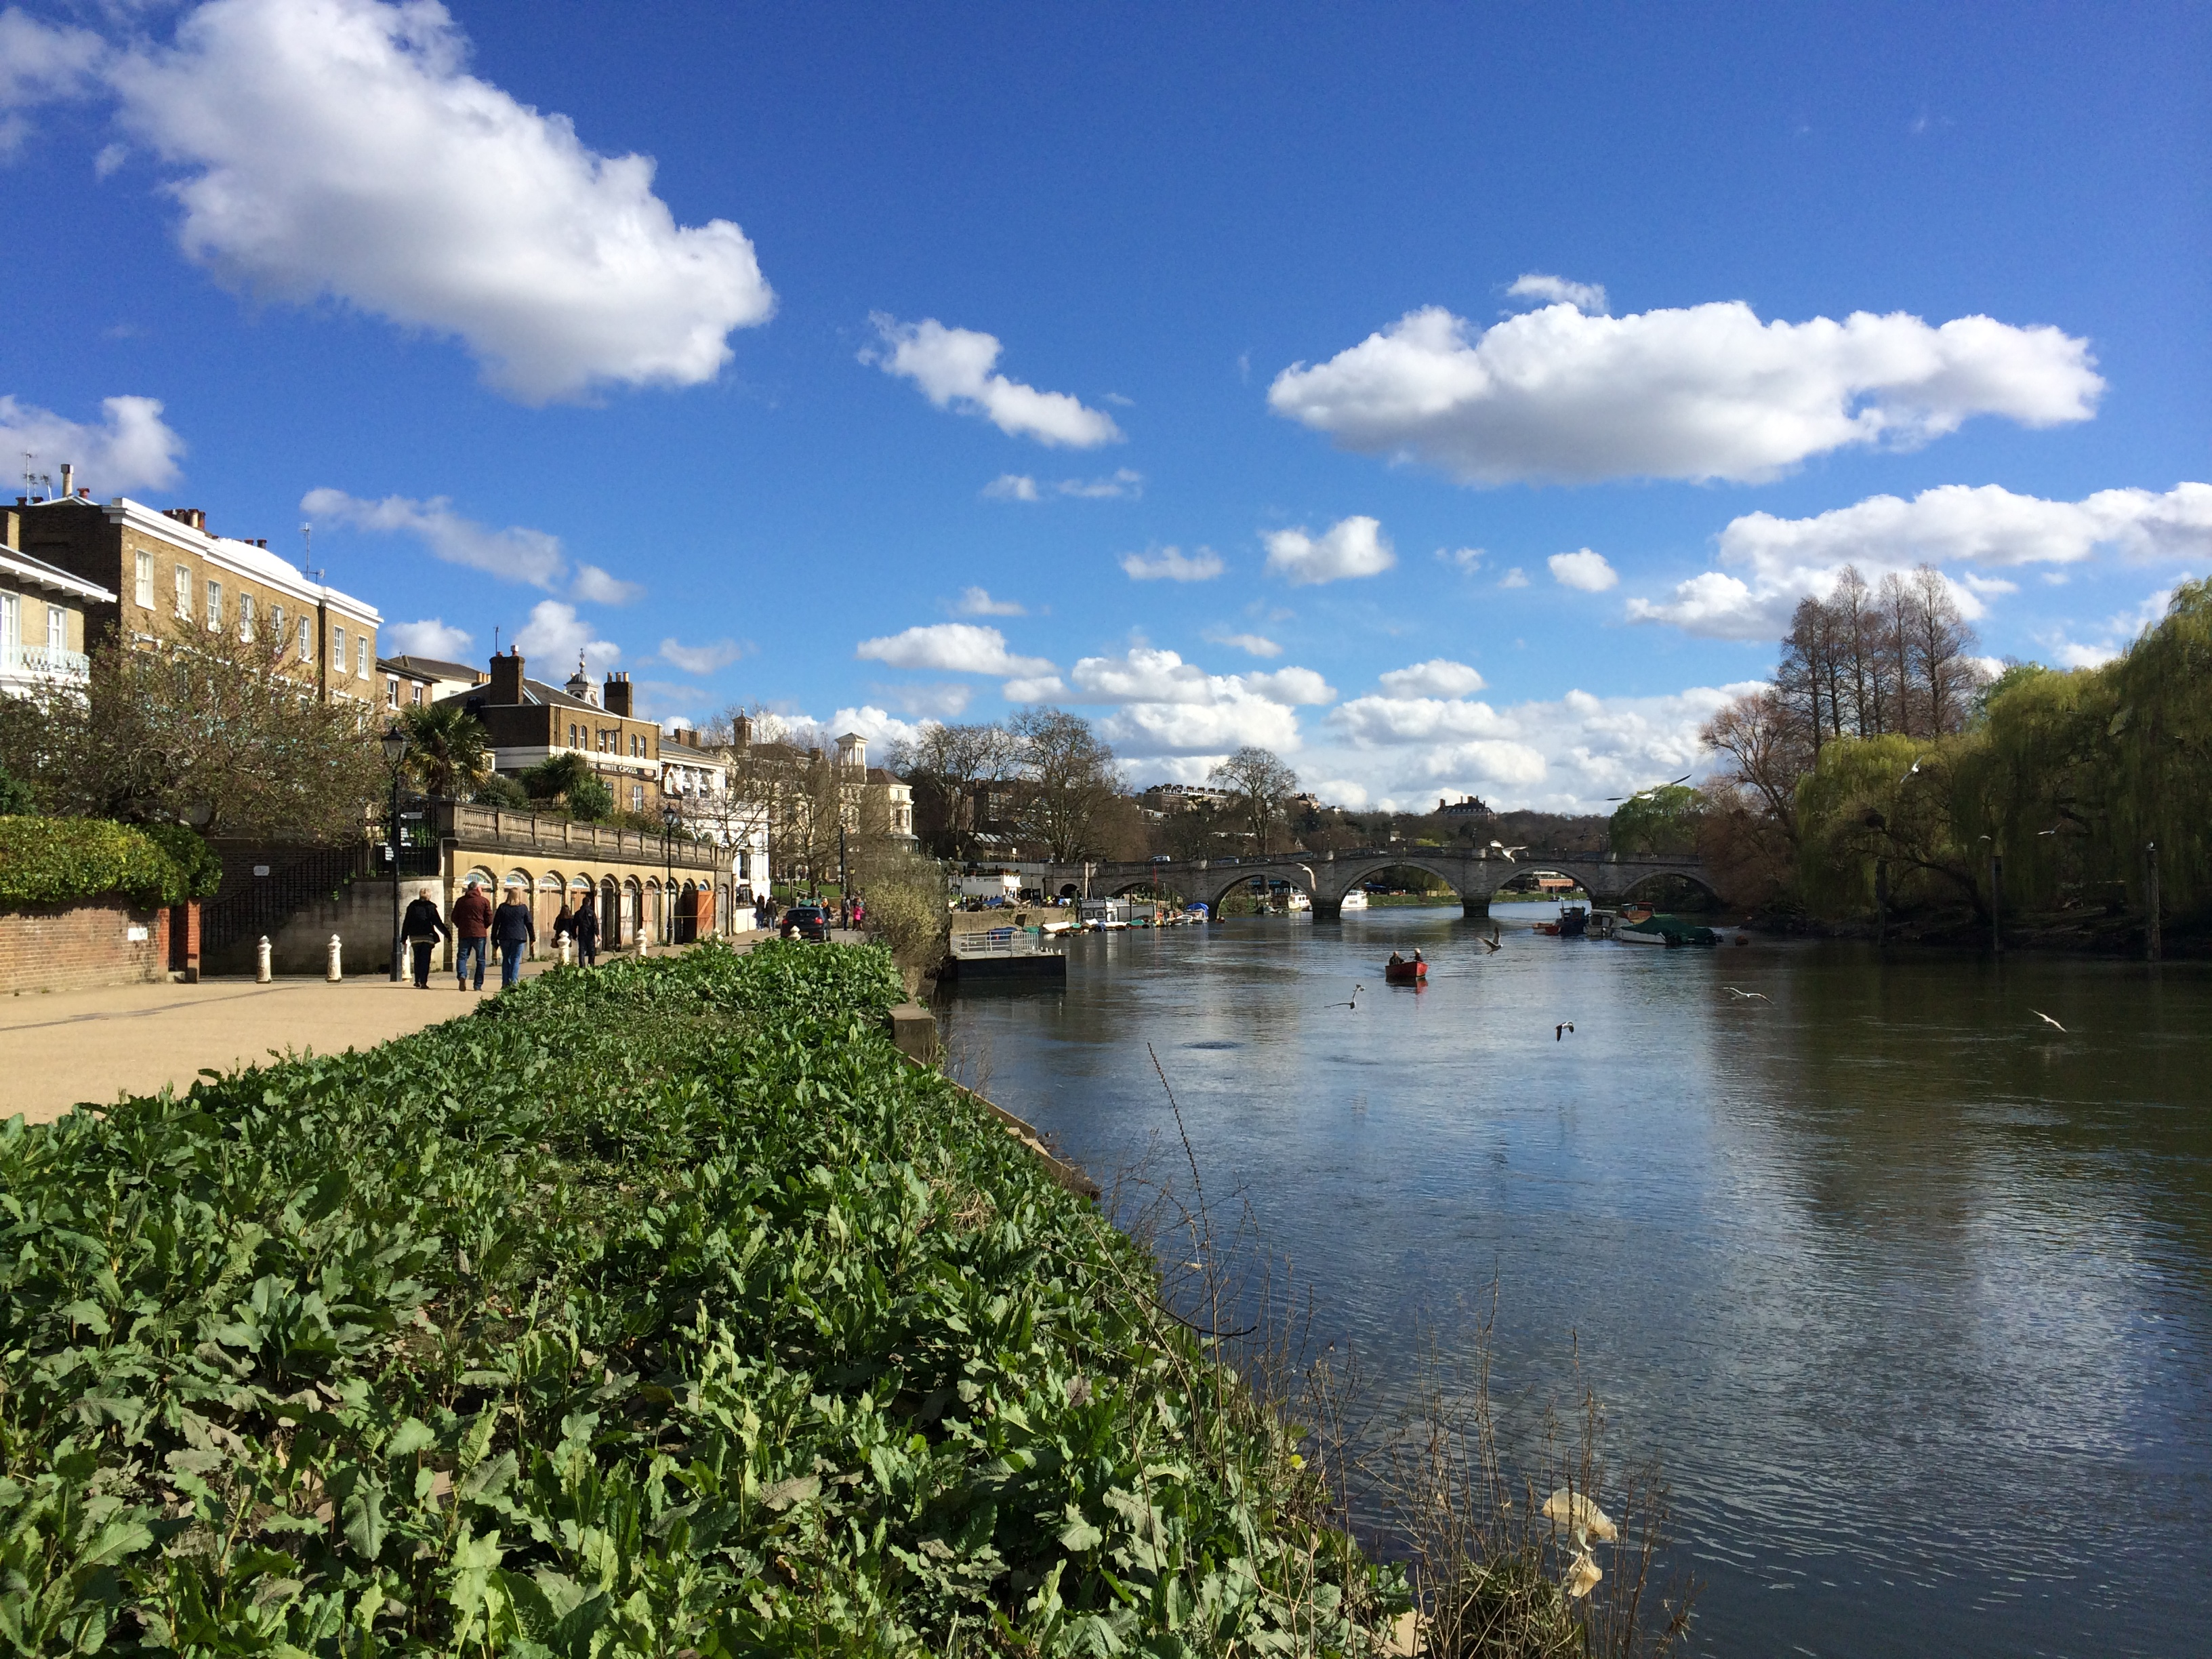 richmondbridge-normal-iphone-5s.jpg